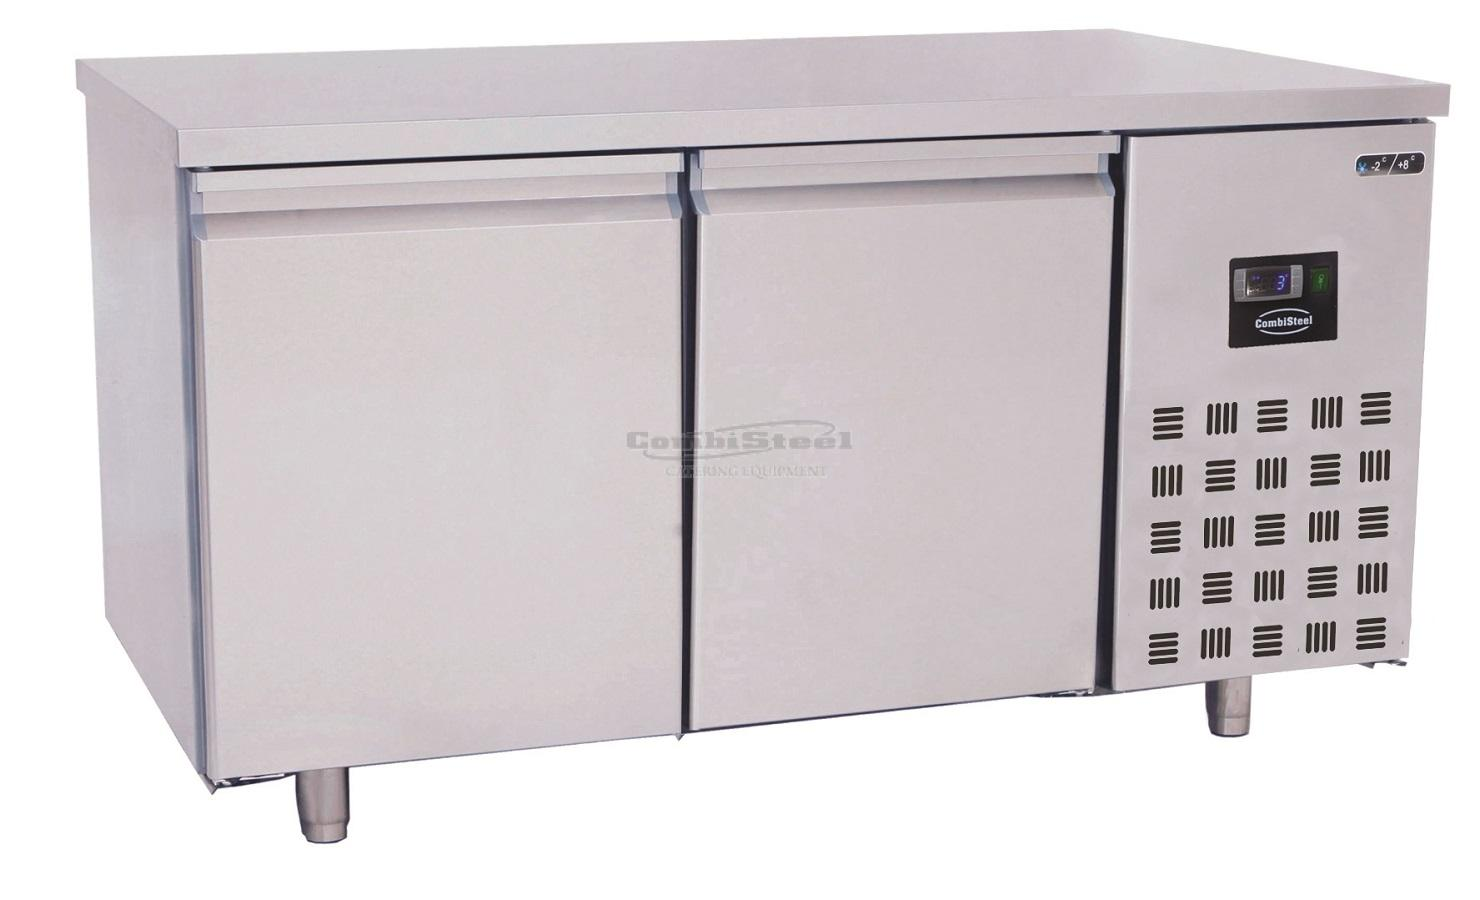 REFRIGERATED BAKERY COUNTER 2 DOORS - 7489.5250 | Spiteri Catering